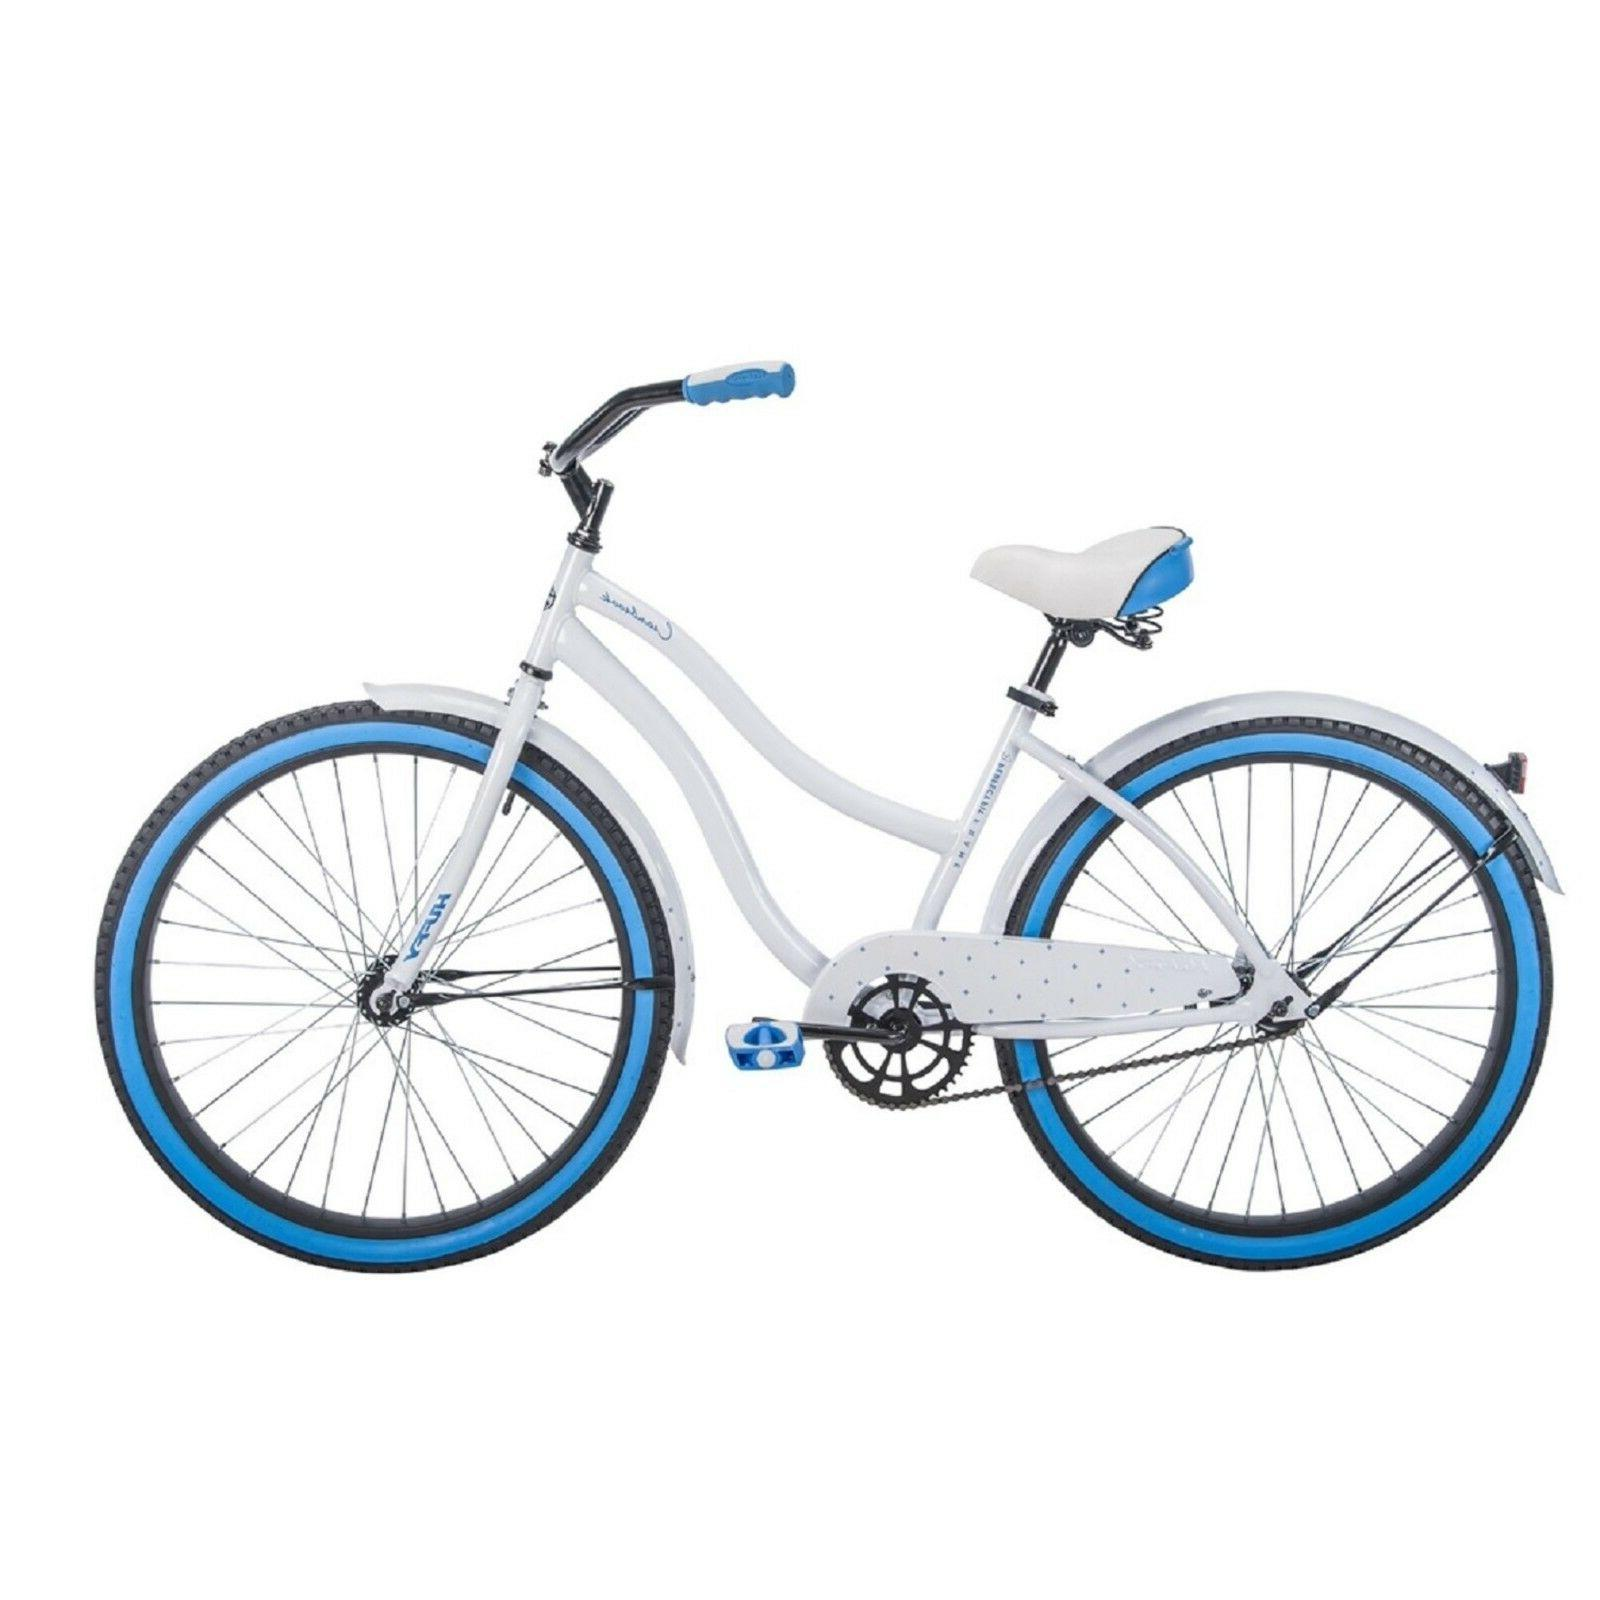 Cruiser Bike Bikes For Teens Girls Inch Comfort